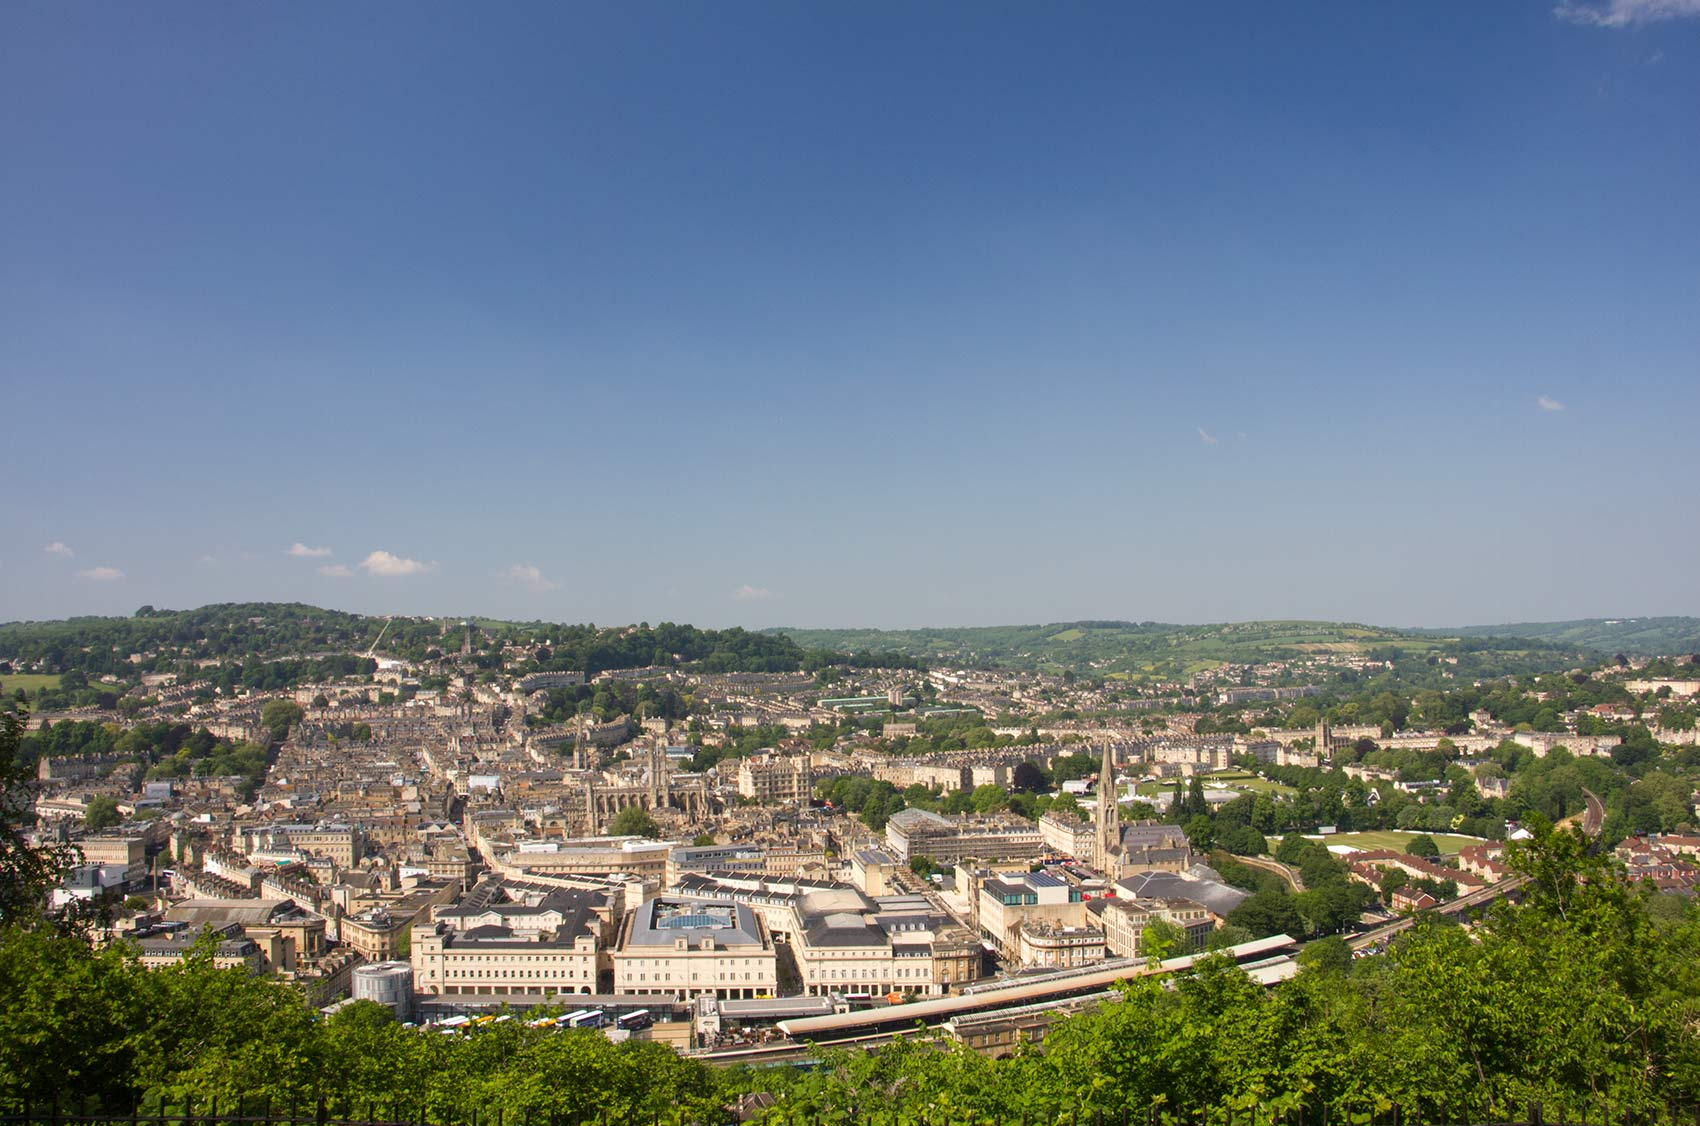 A view over Bath, Uk